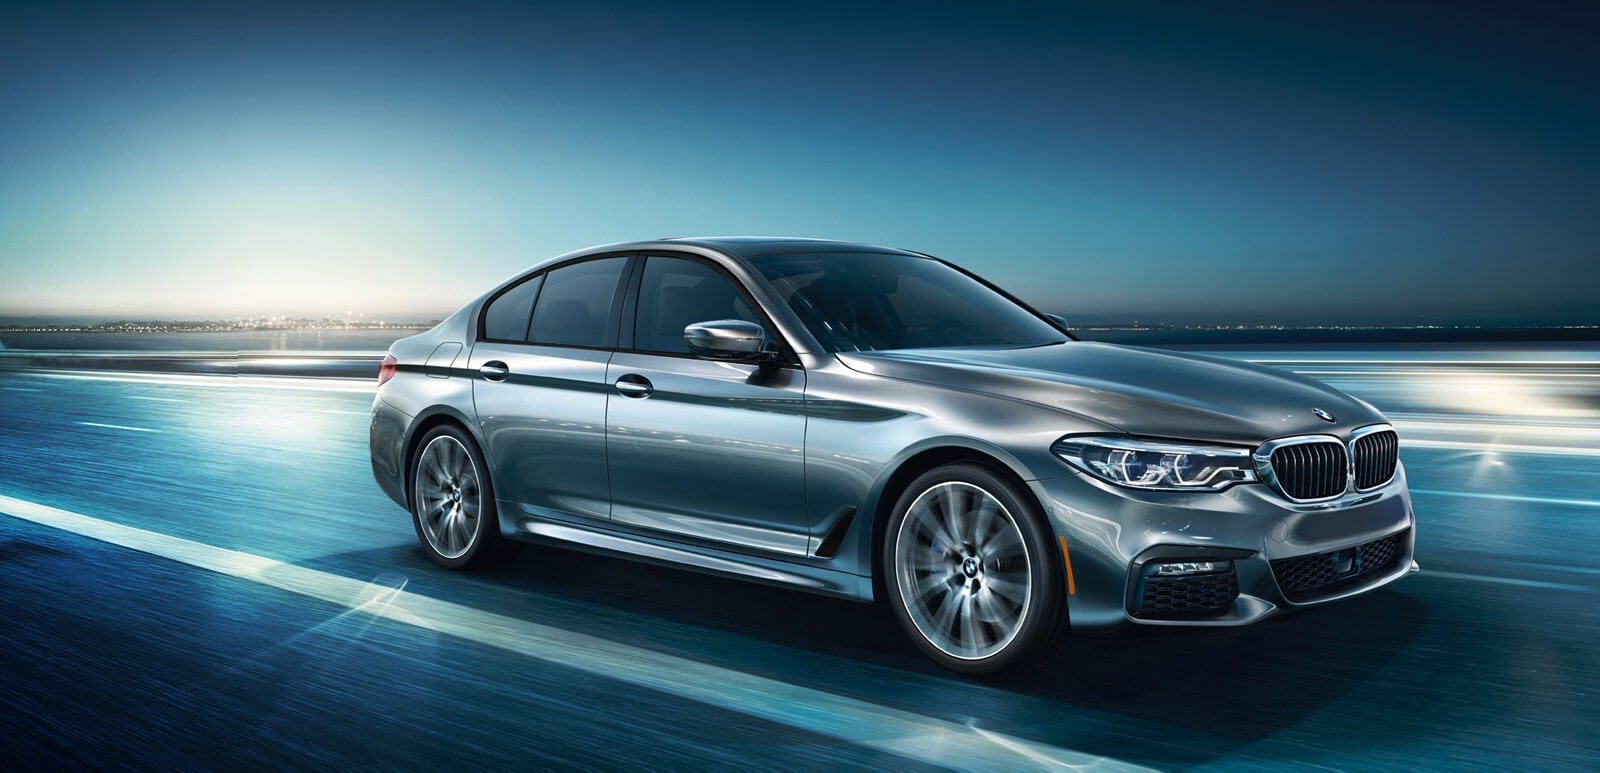 bmw 5 series sedan model overview bmw north america. Black Bedroom Furniture Sets. Home Design Ideas